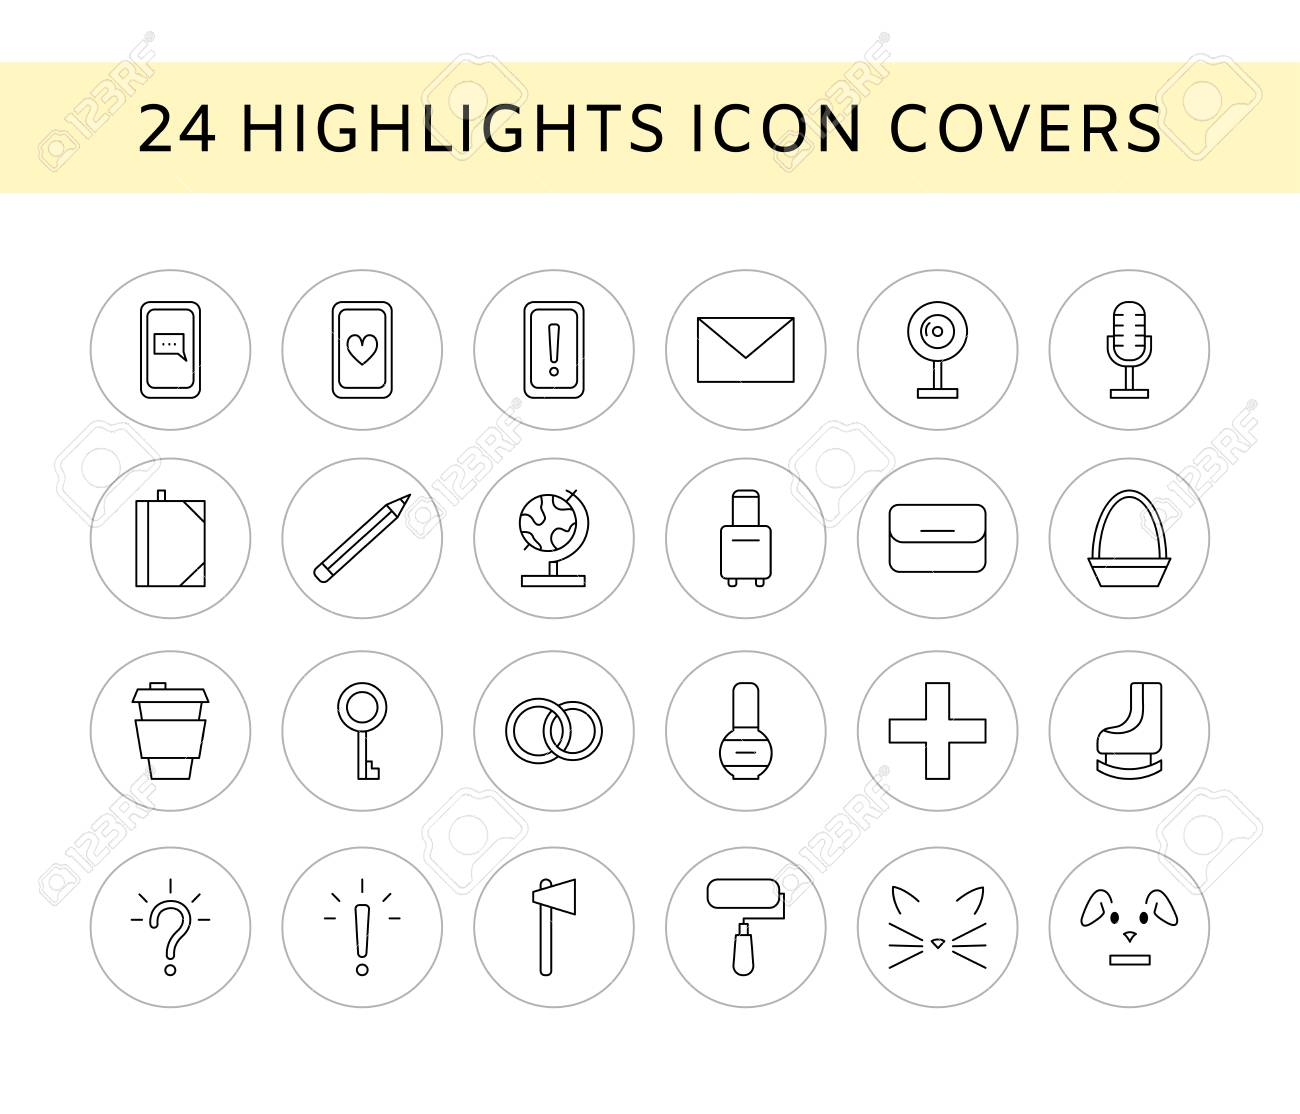 Vector Set Of 24 Line Icons Social Media Story Highlights Covers Royalty Free Cliparts Vectors And Stock Illustration Image 117333779